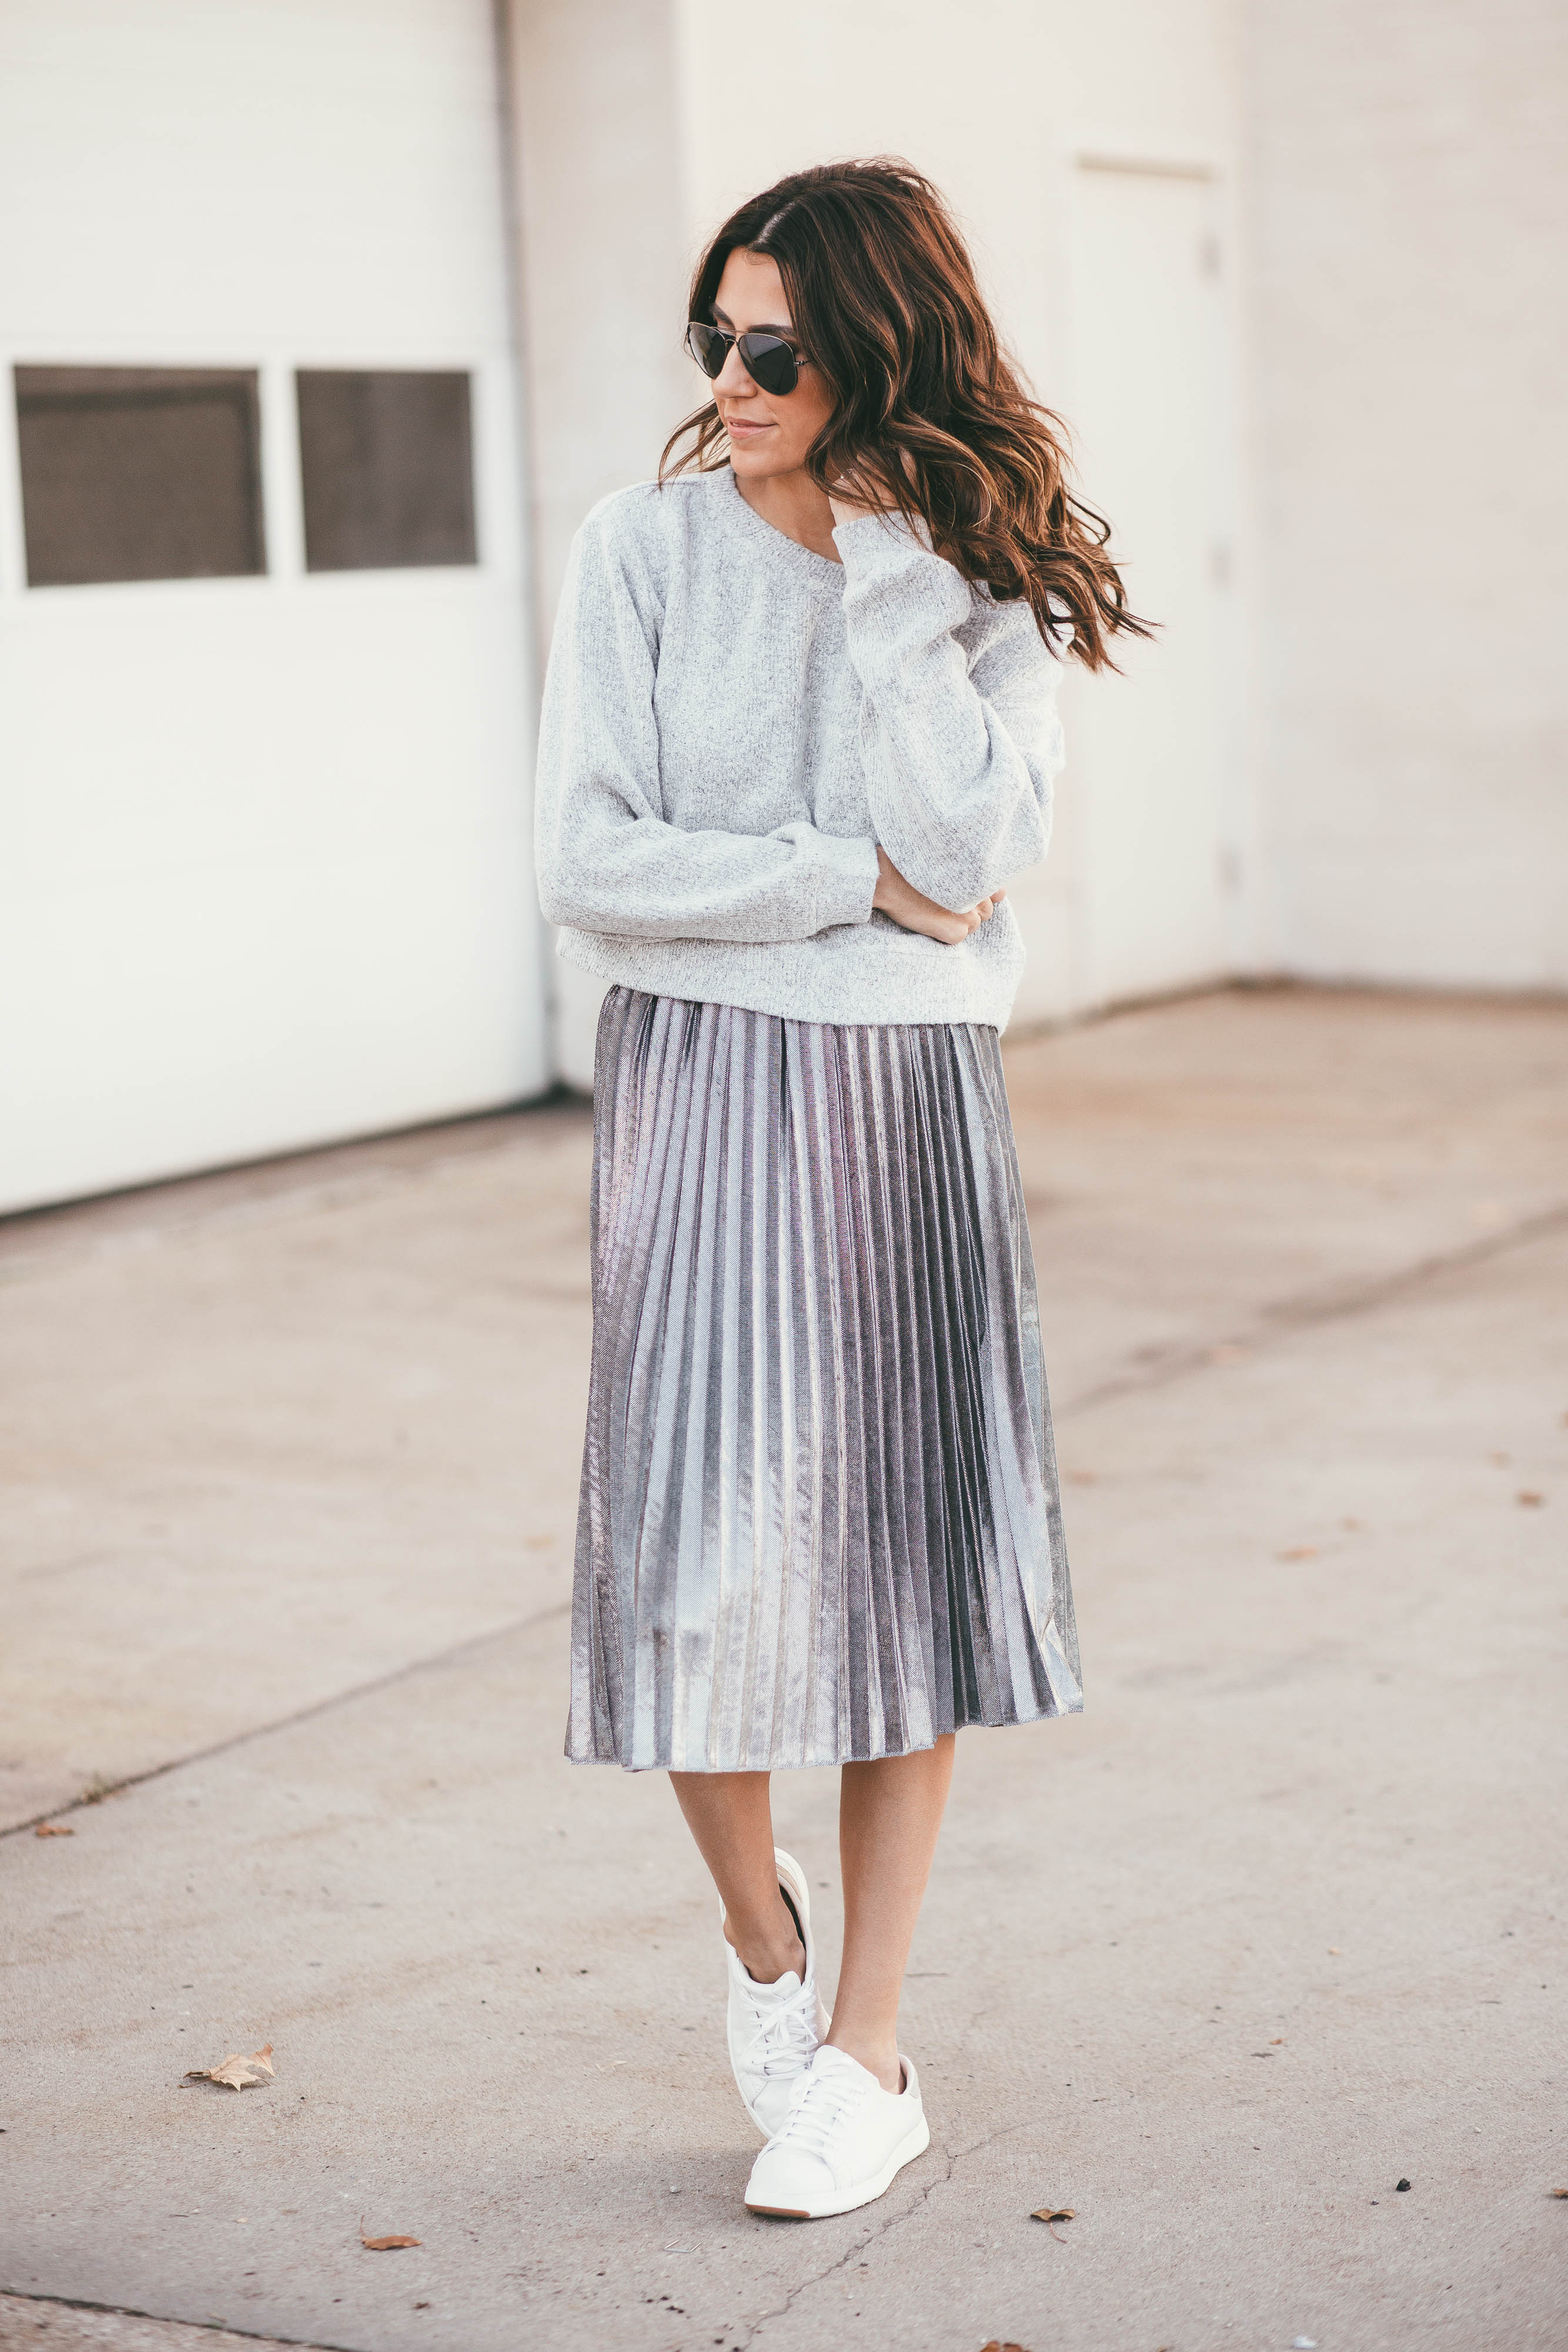 ily couture silver pleated skirt